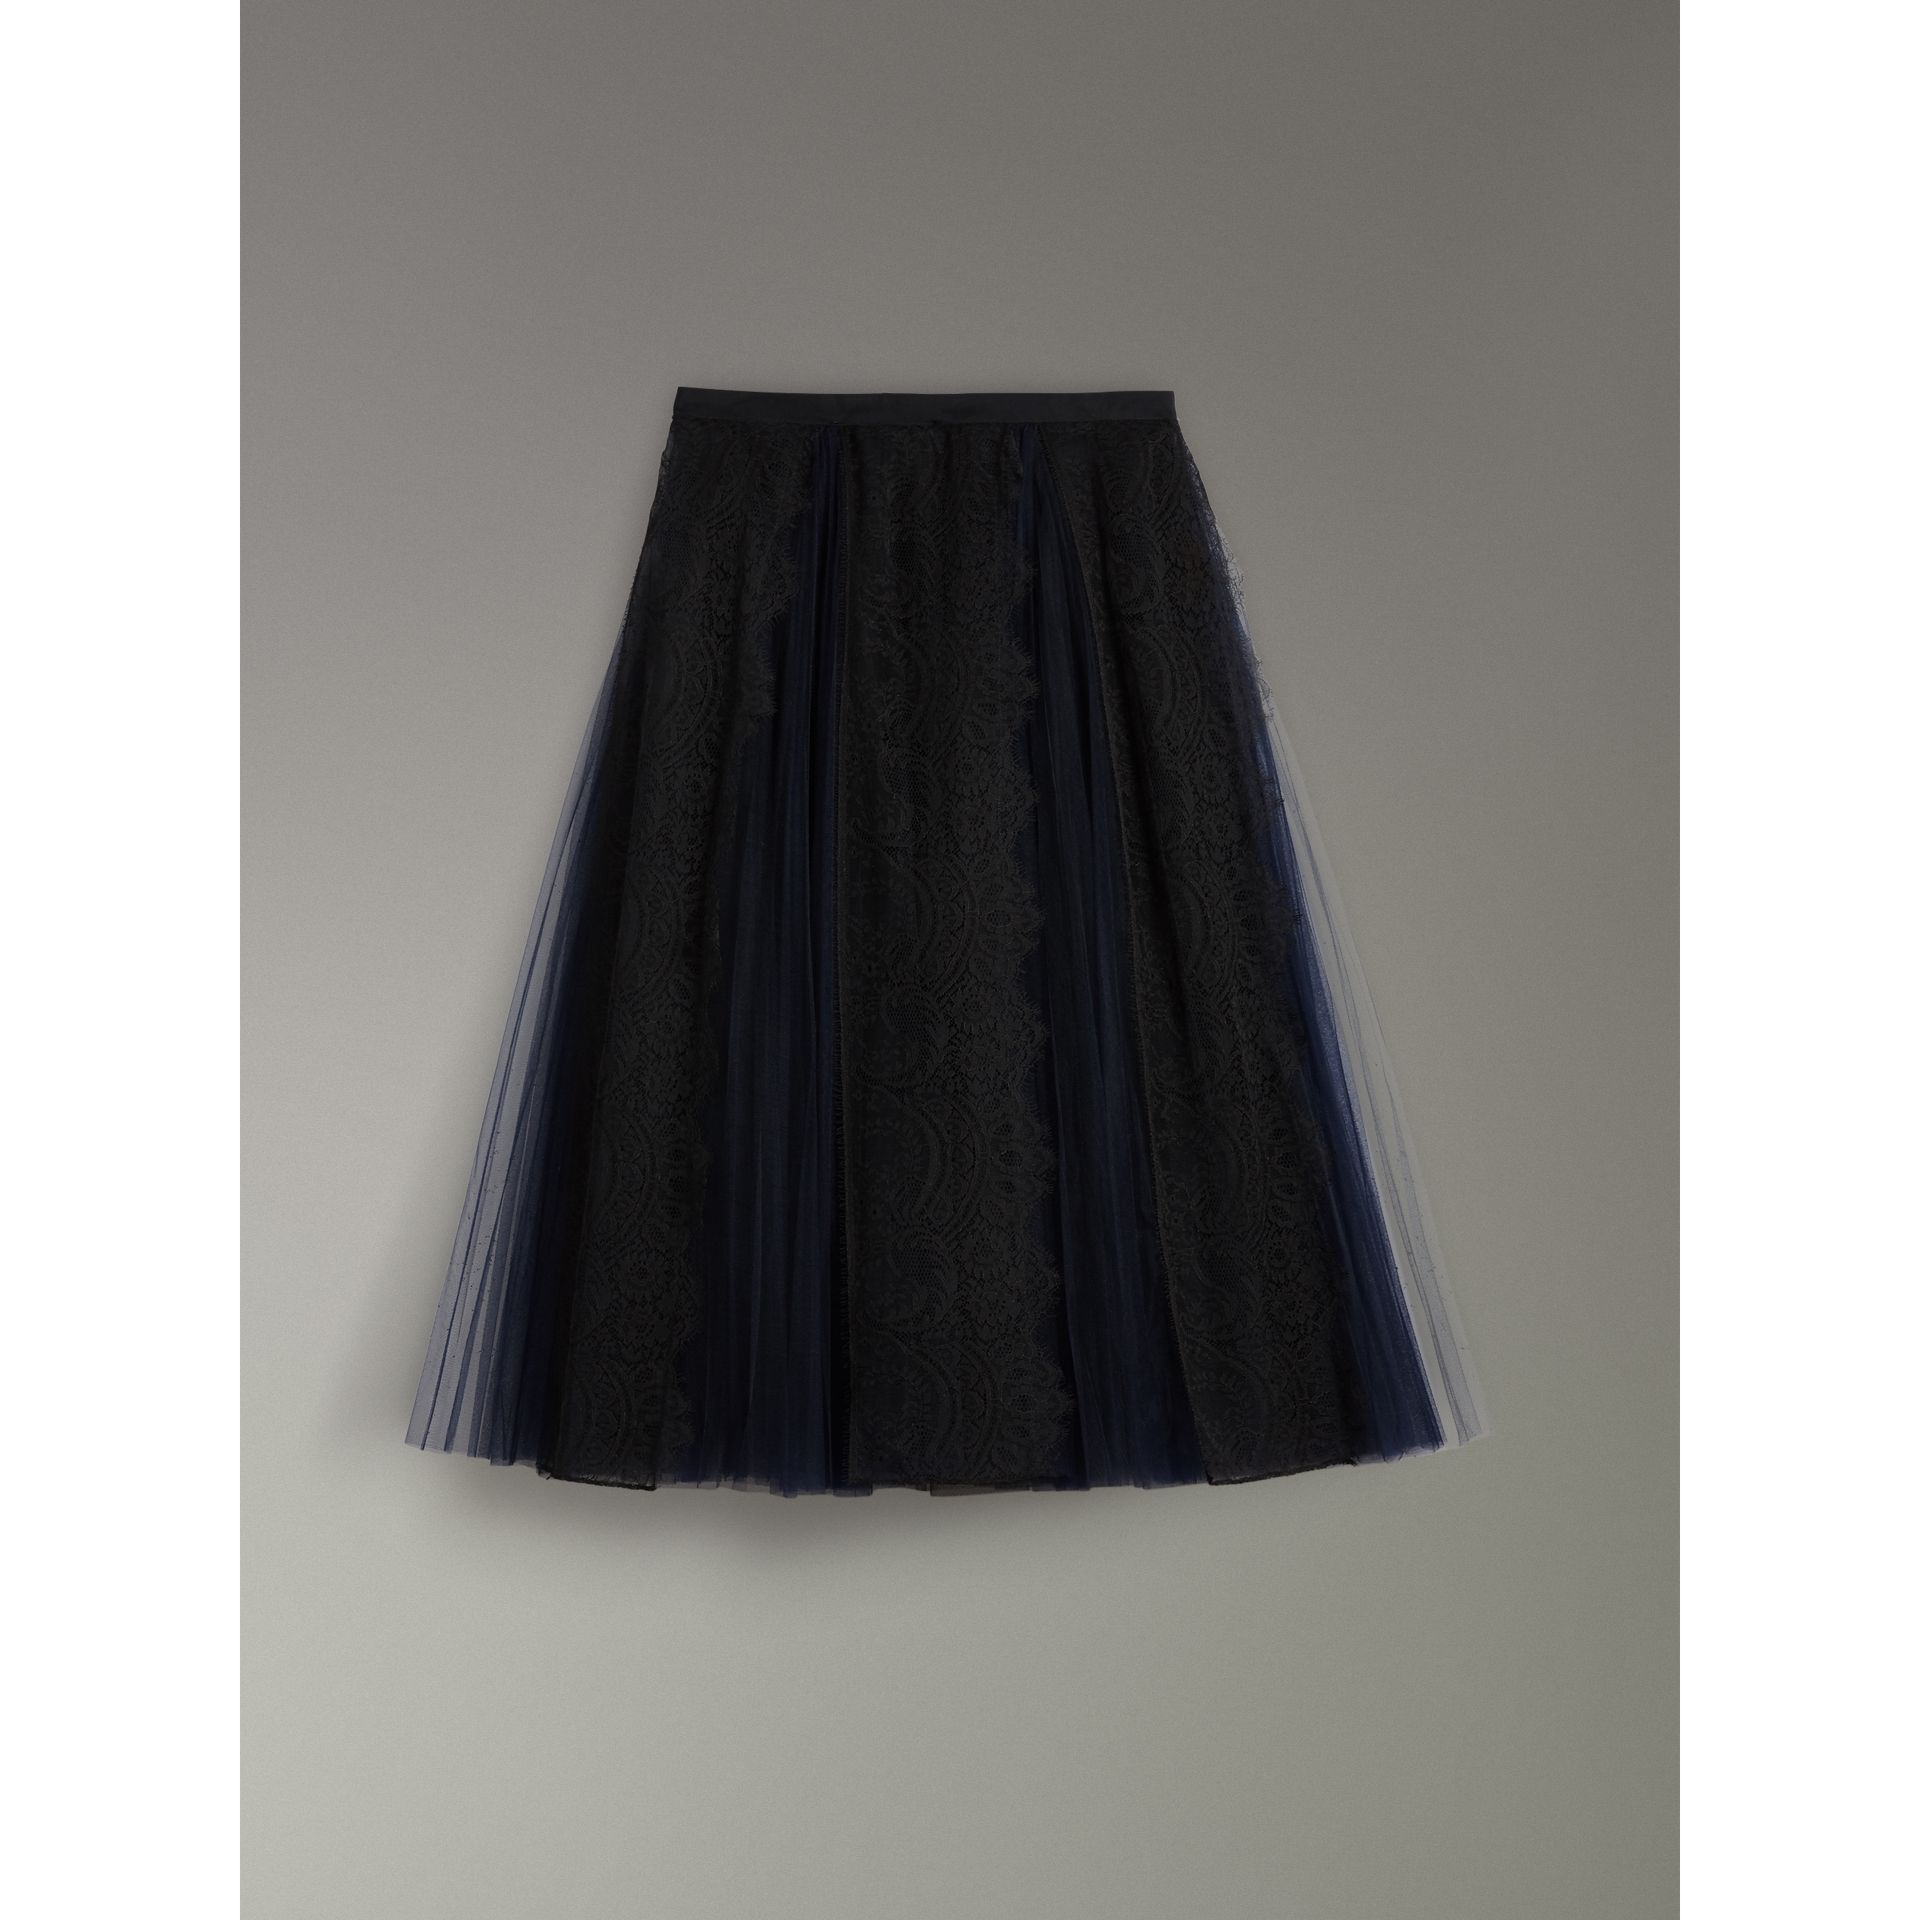 Lace Panel Pleated Tulle Skirt in Navy - Women | Burberry - gallery image 3